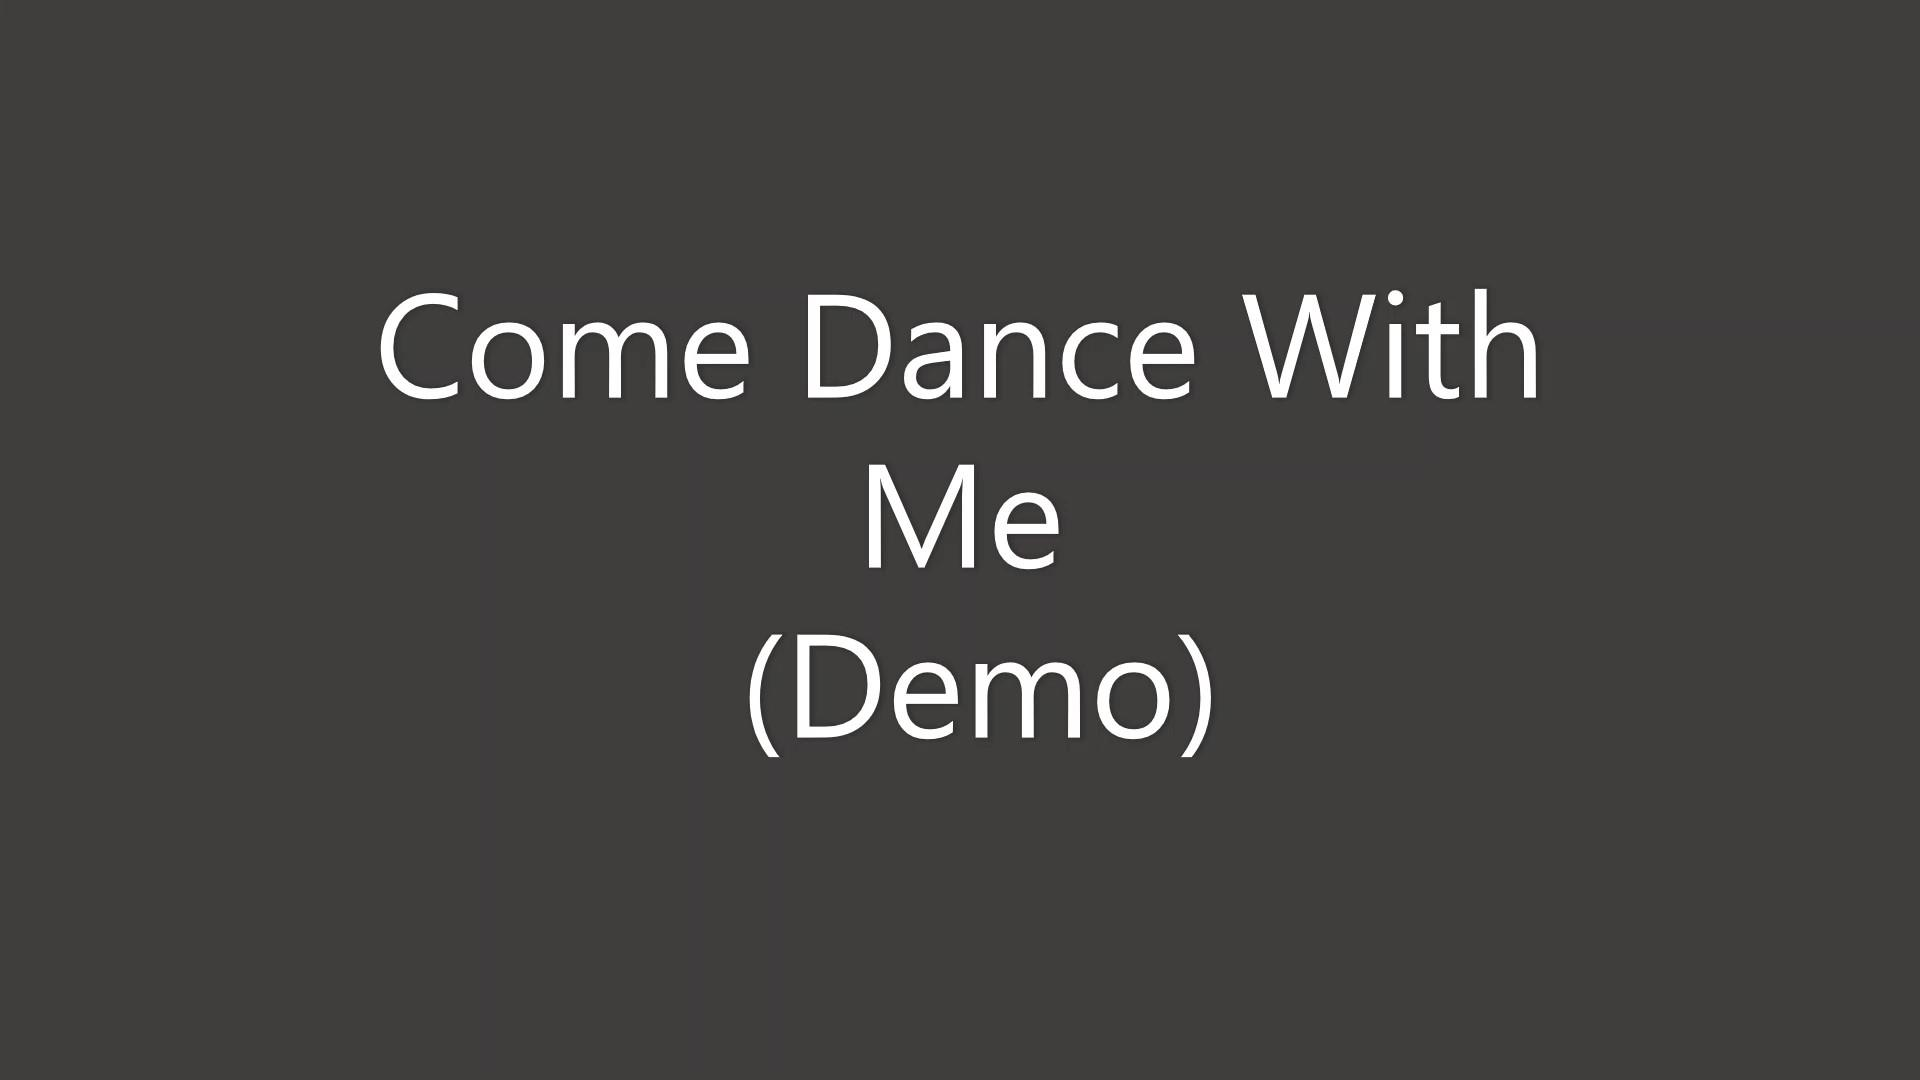 Come Dance With Me Demo